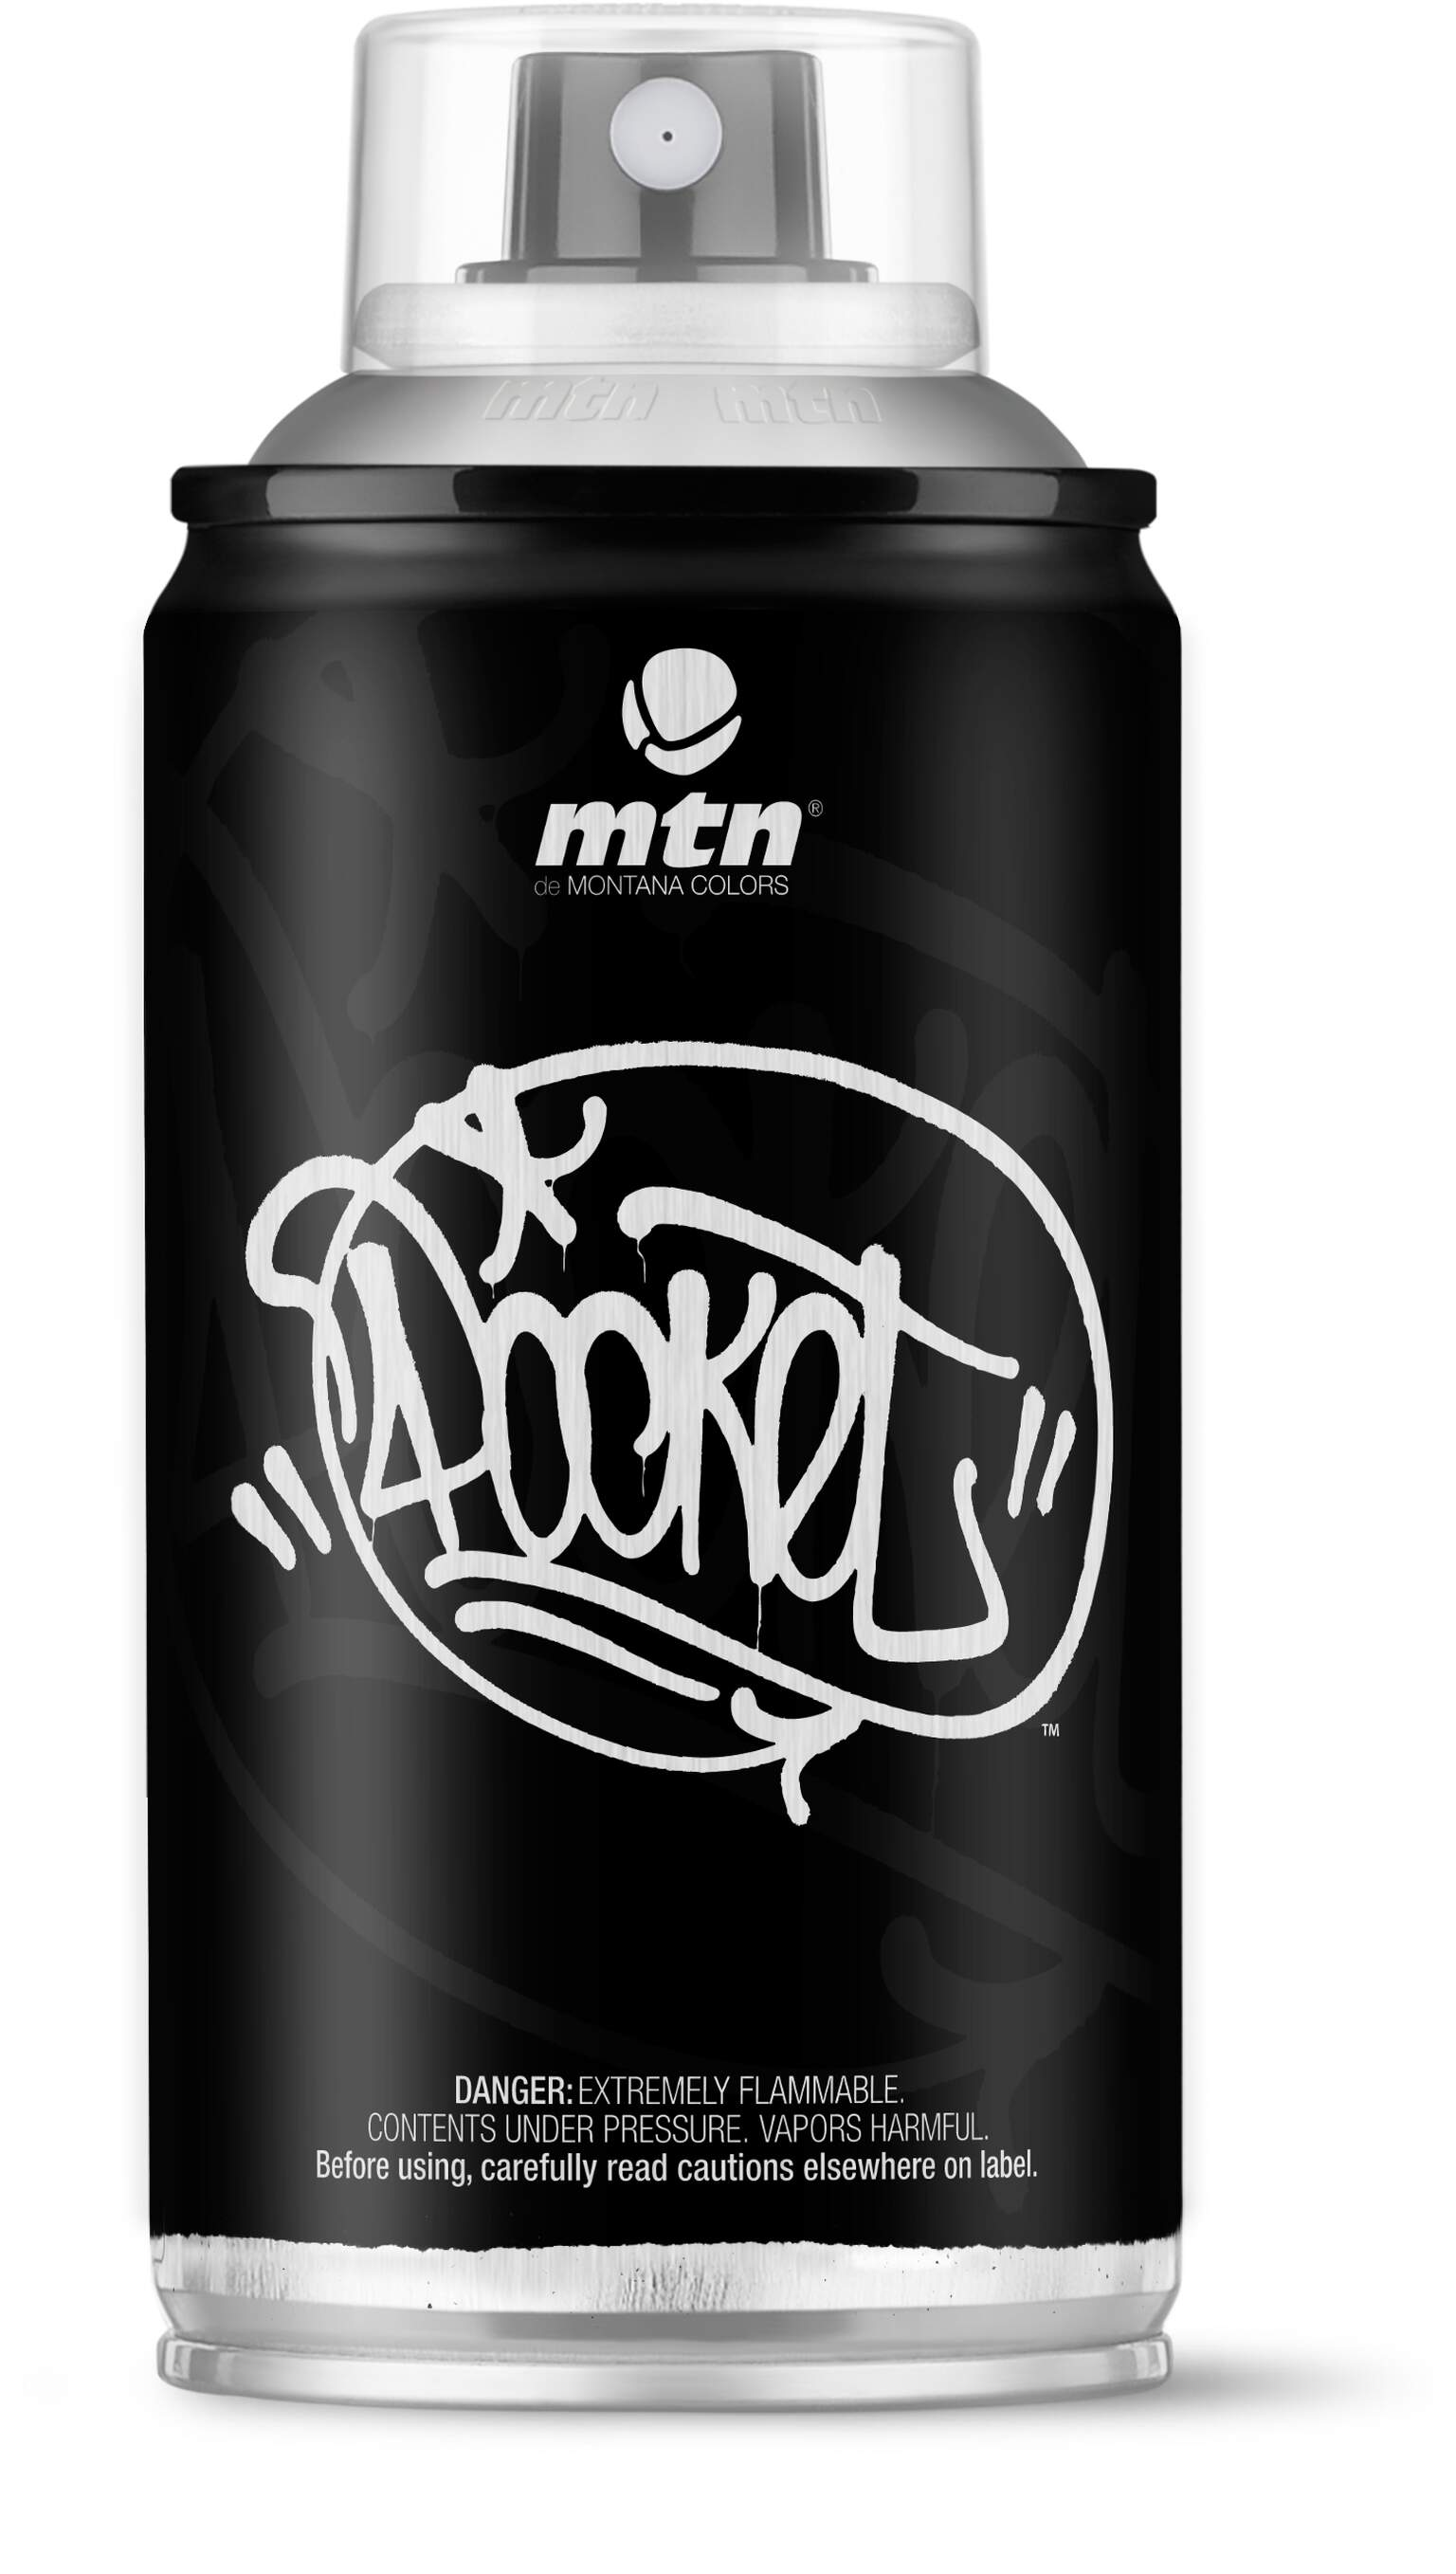 mtn: MTN Pocket 150ml, Spray Can